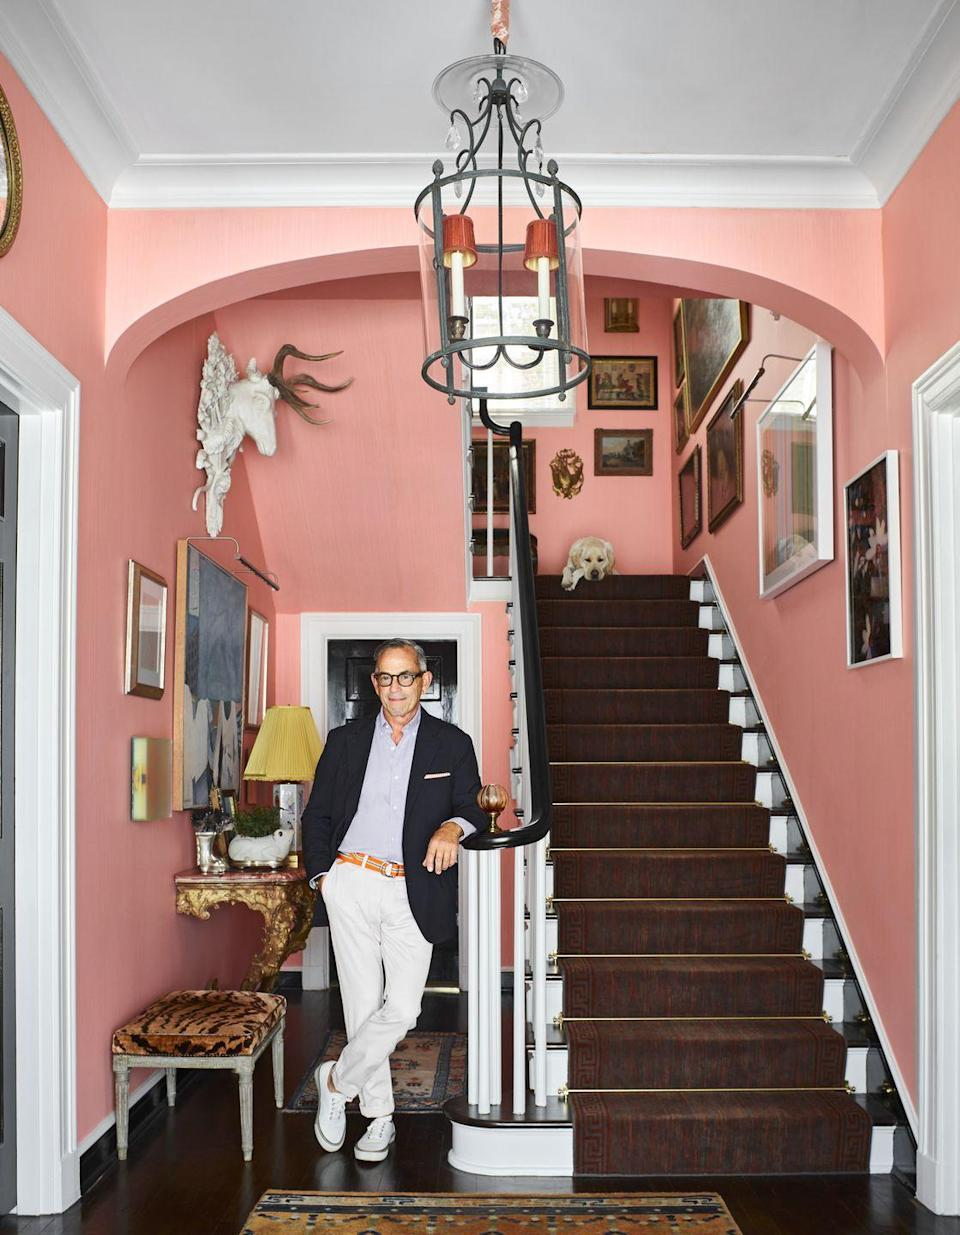 """<p><a href=""""https://www.veranda.com/decorating-ideas/house-tours/a36082856/todd-romano-san-antonio-home-tour/"""" rel=""""nofollow noopener"""" target=""""_blank"""" data-ylk=""""slk:Todd Romano's striking San Antonio home"""" class=""""link rapid-noclick-resp"""">Todd Romano's striking San Antonio home </a>is full of lively artwork mixed with traditional design for a one-of-a-kind home that shows restraint when needed. Here, Romano shows off a staircase that has been painted black and white, acting as a perfect foil for the pink walls. </p>"""